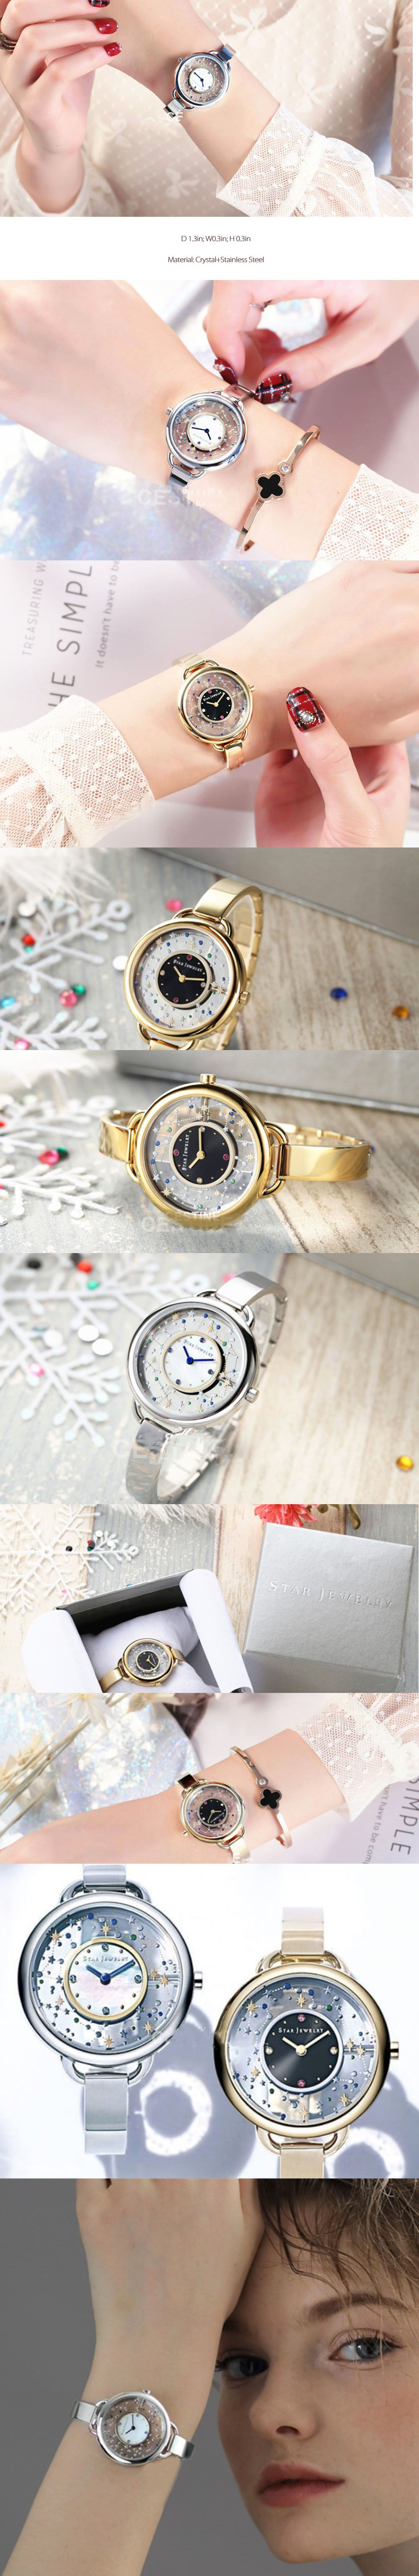 Star Jewelry Watch Space Collection